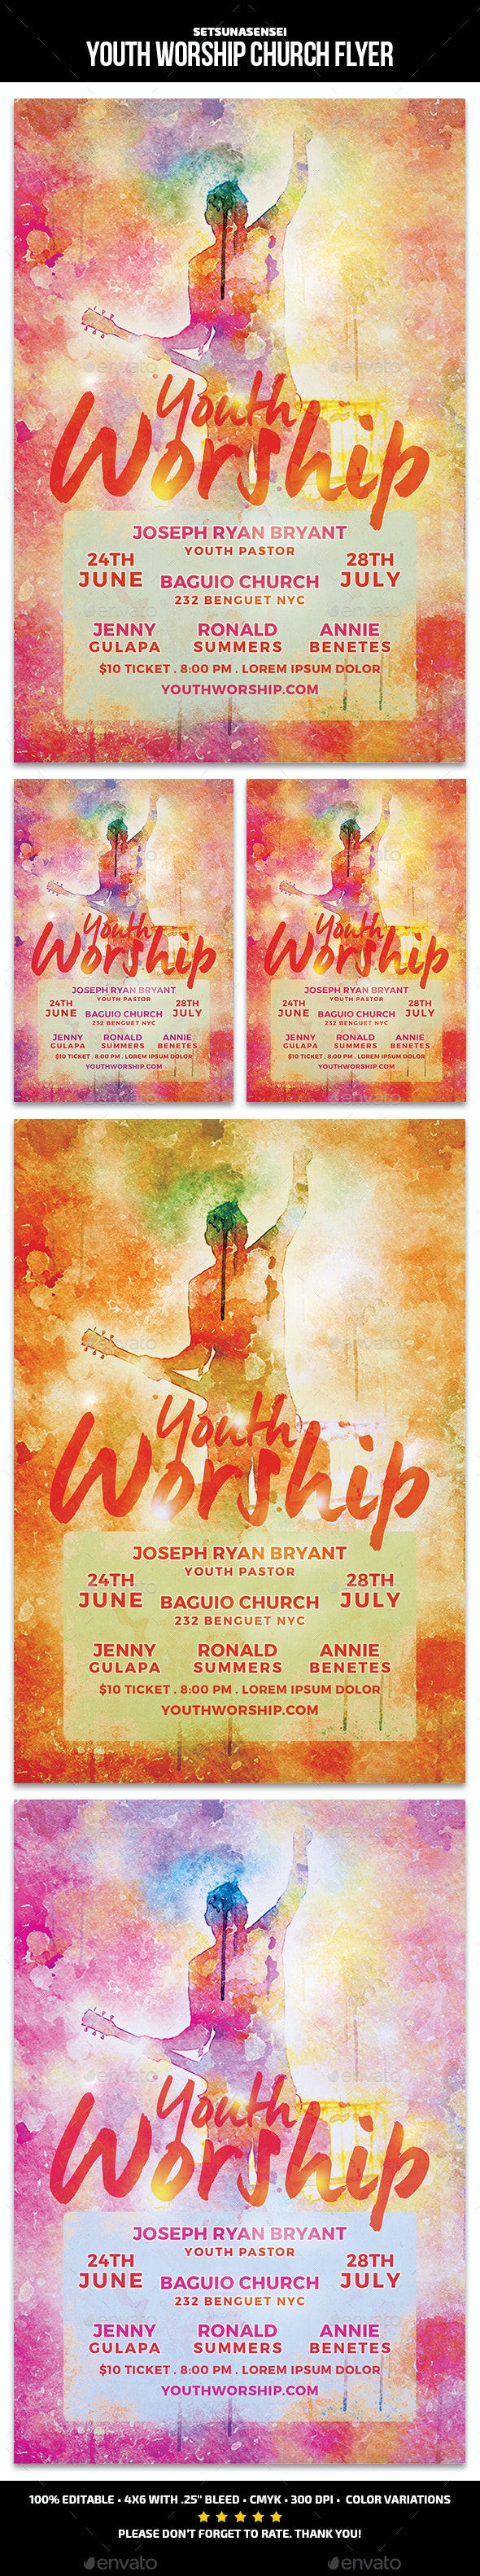 Youth Worship Church Flyer - Events Flyers